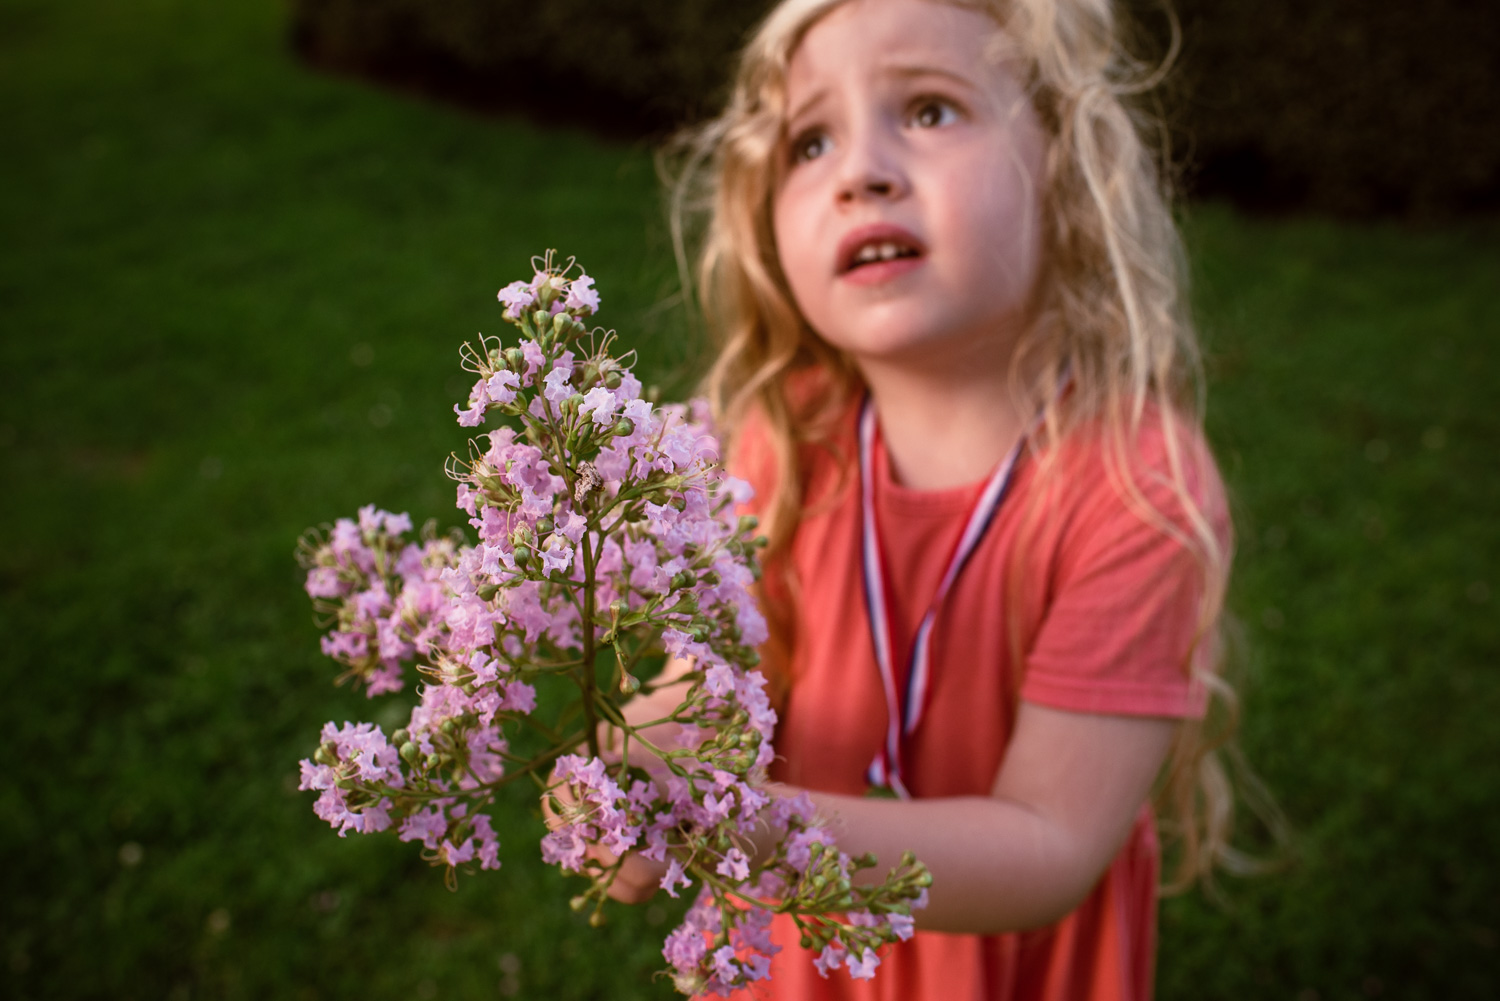 Francesca Russell Photography | Long Island Family Documentary Photography | Picking flowers